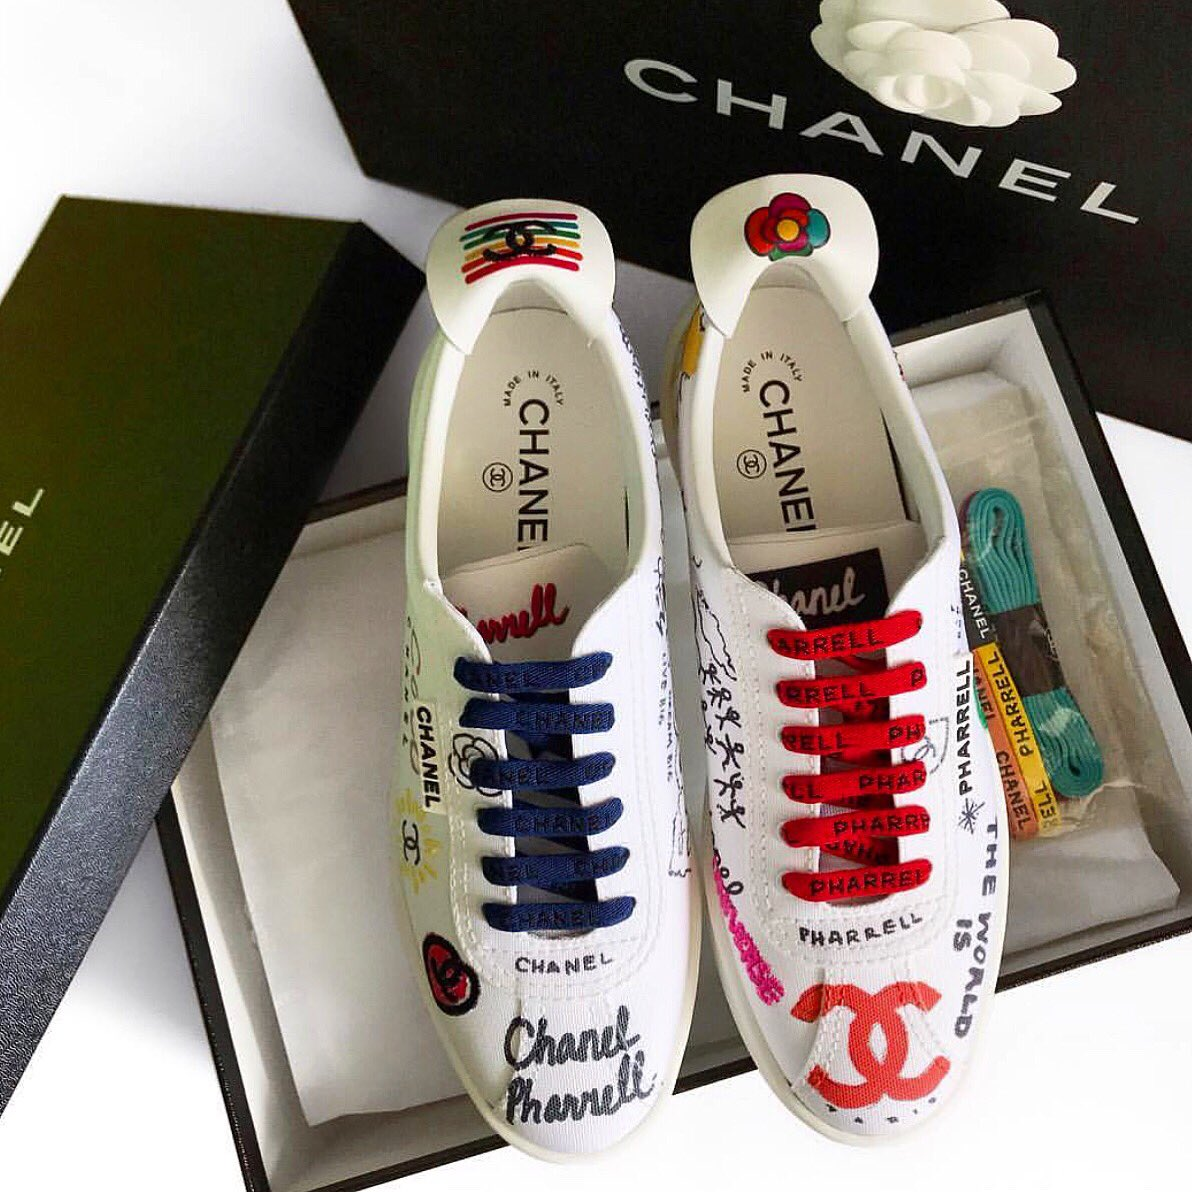 official photos 8a832 93412 Chanel x Pharrell Williams Sneakers COLOR : White SIZE : 37 ...